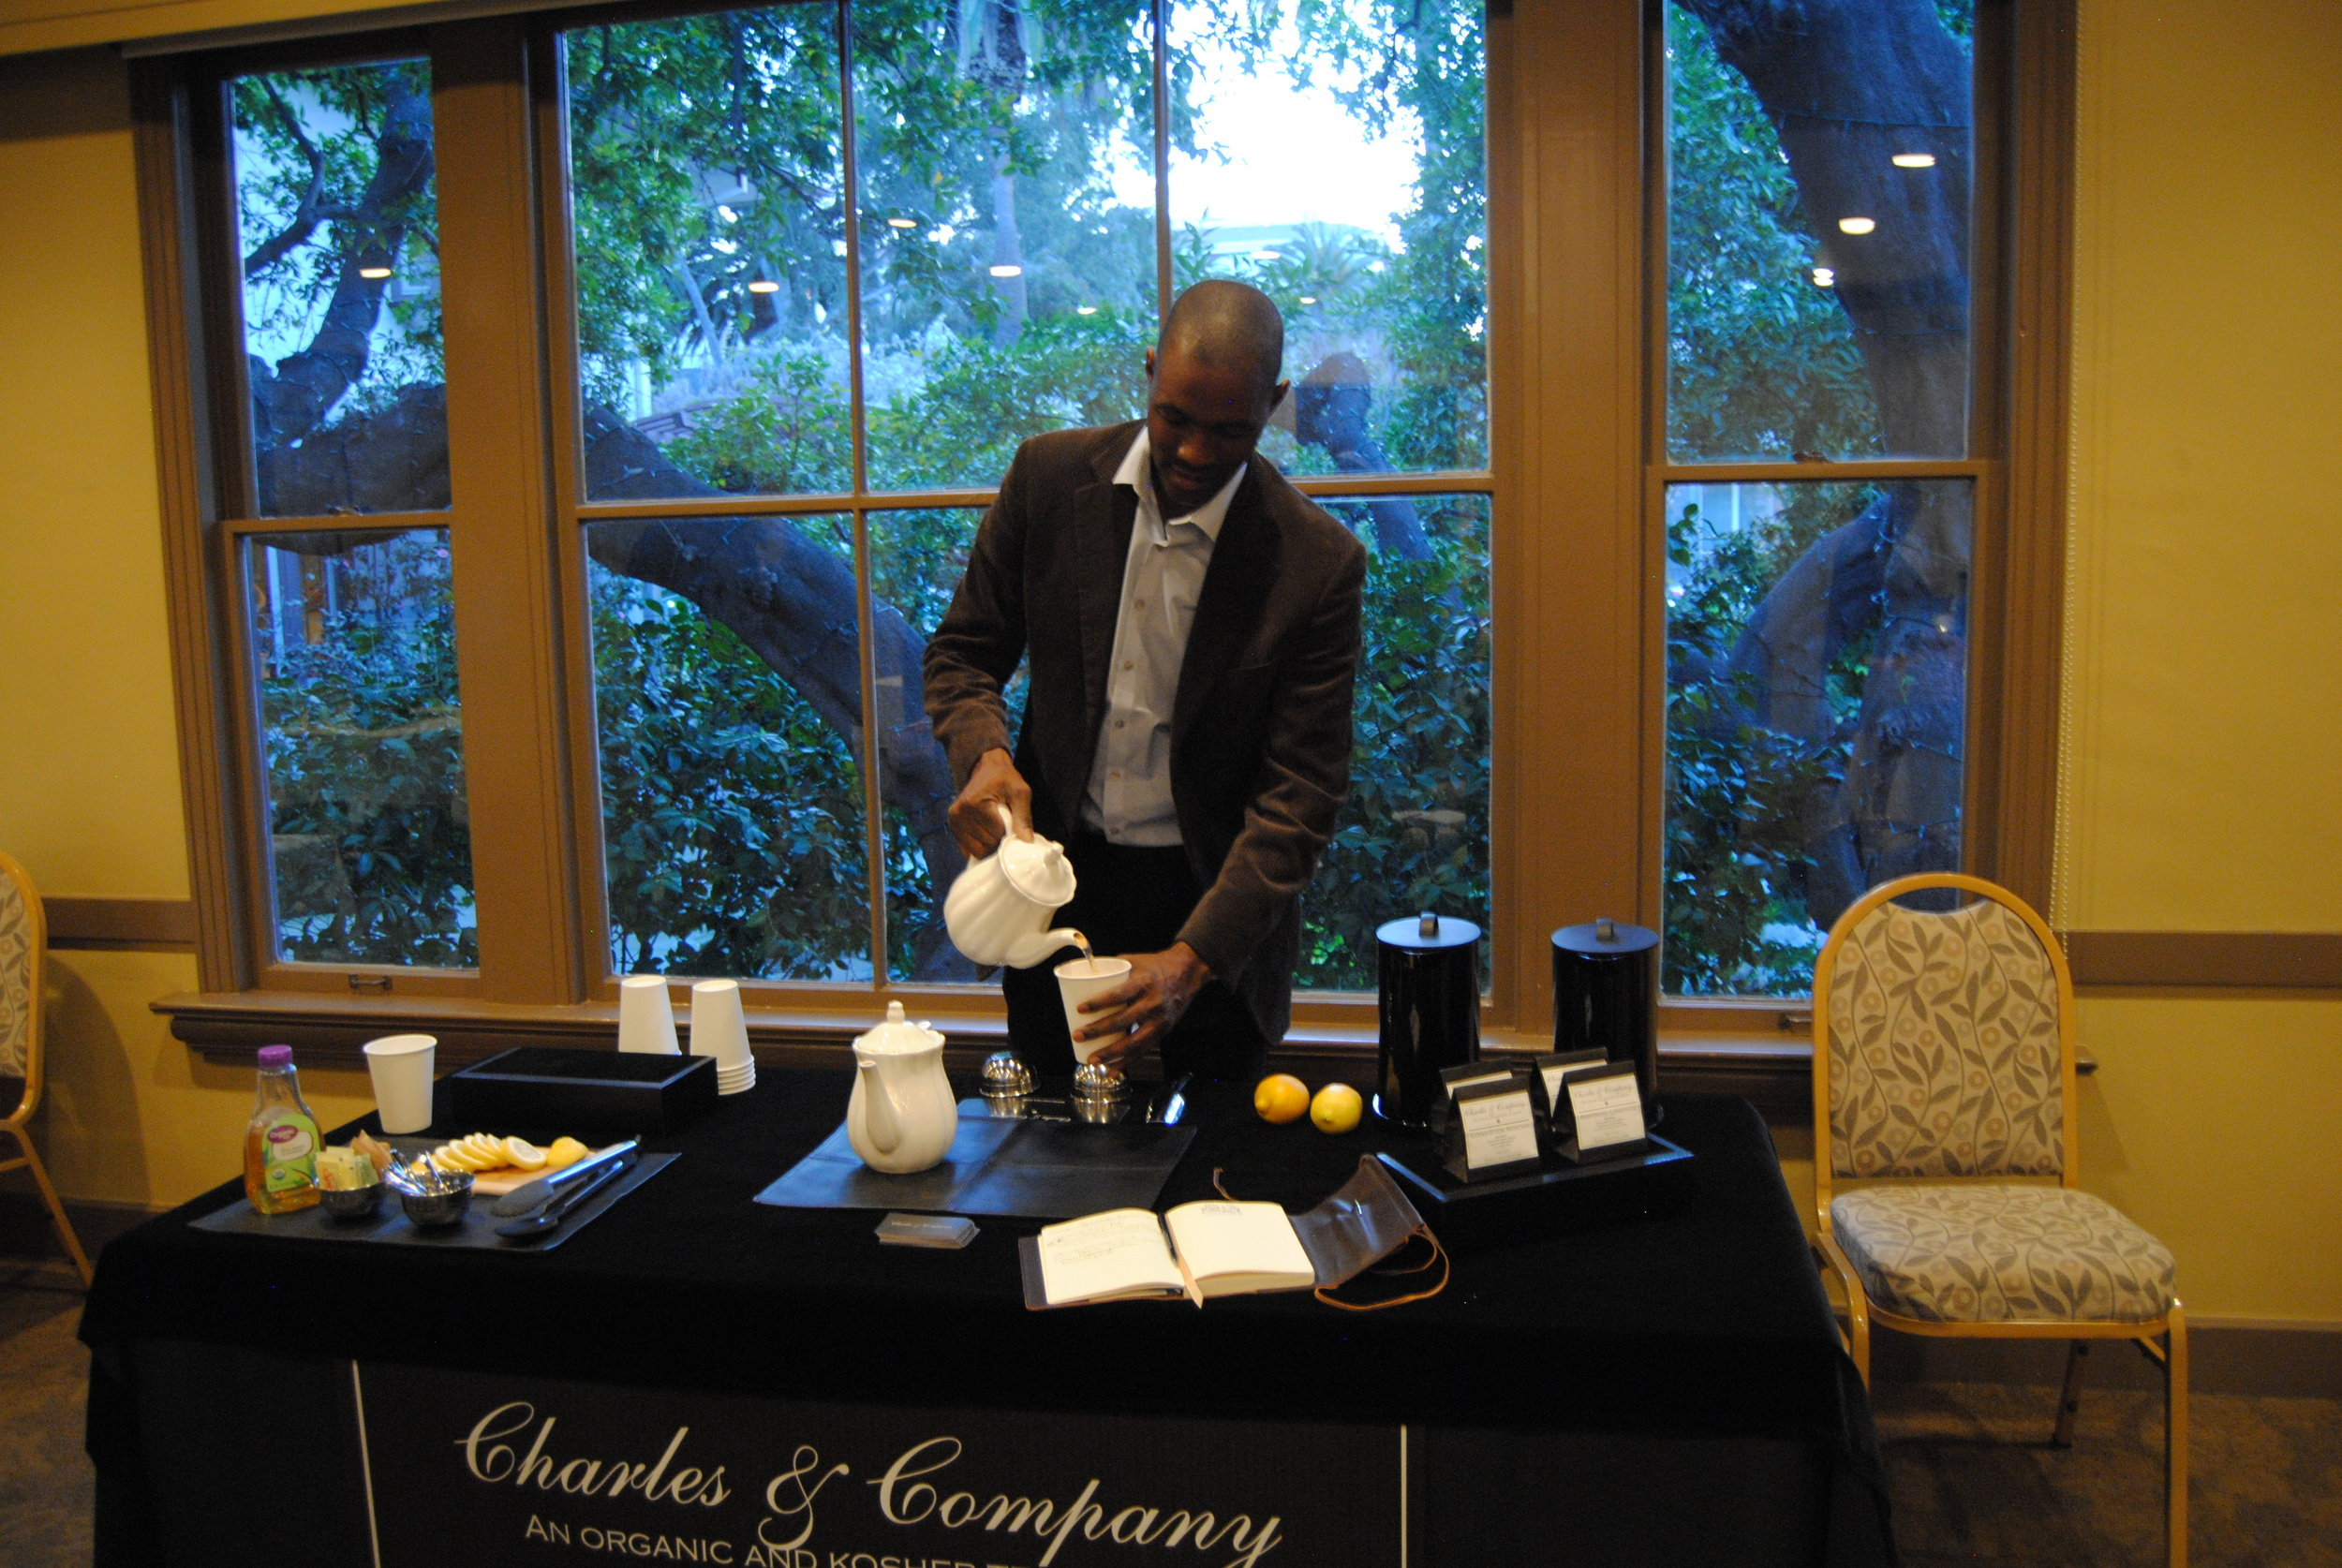 Lawrence Charles,  Charles & Company  prepares curated teas tastings